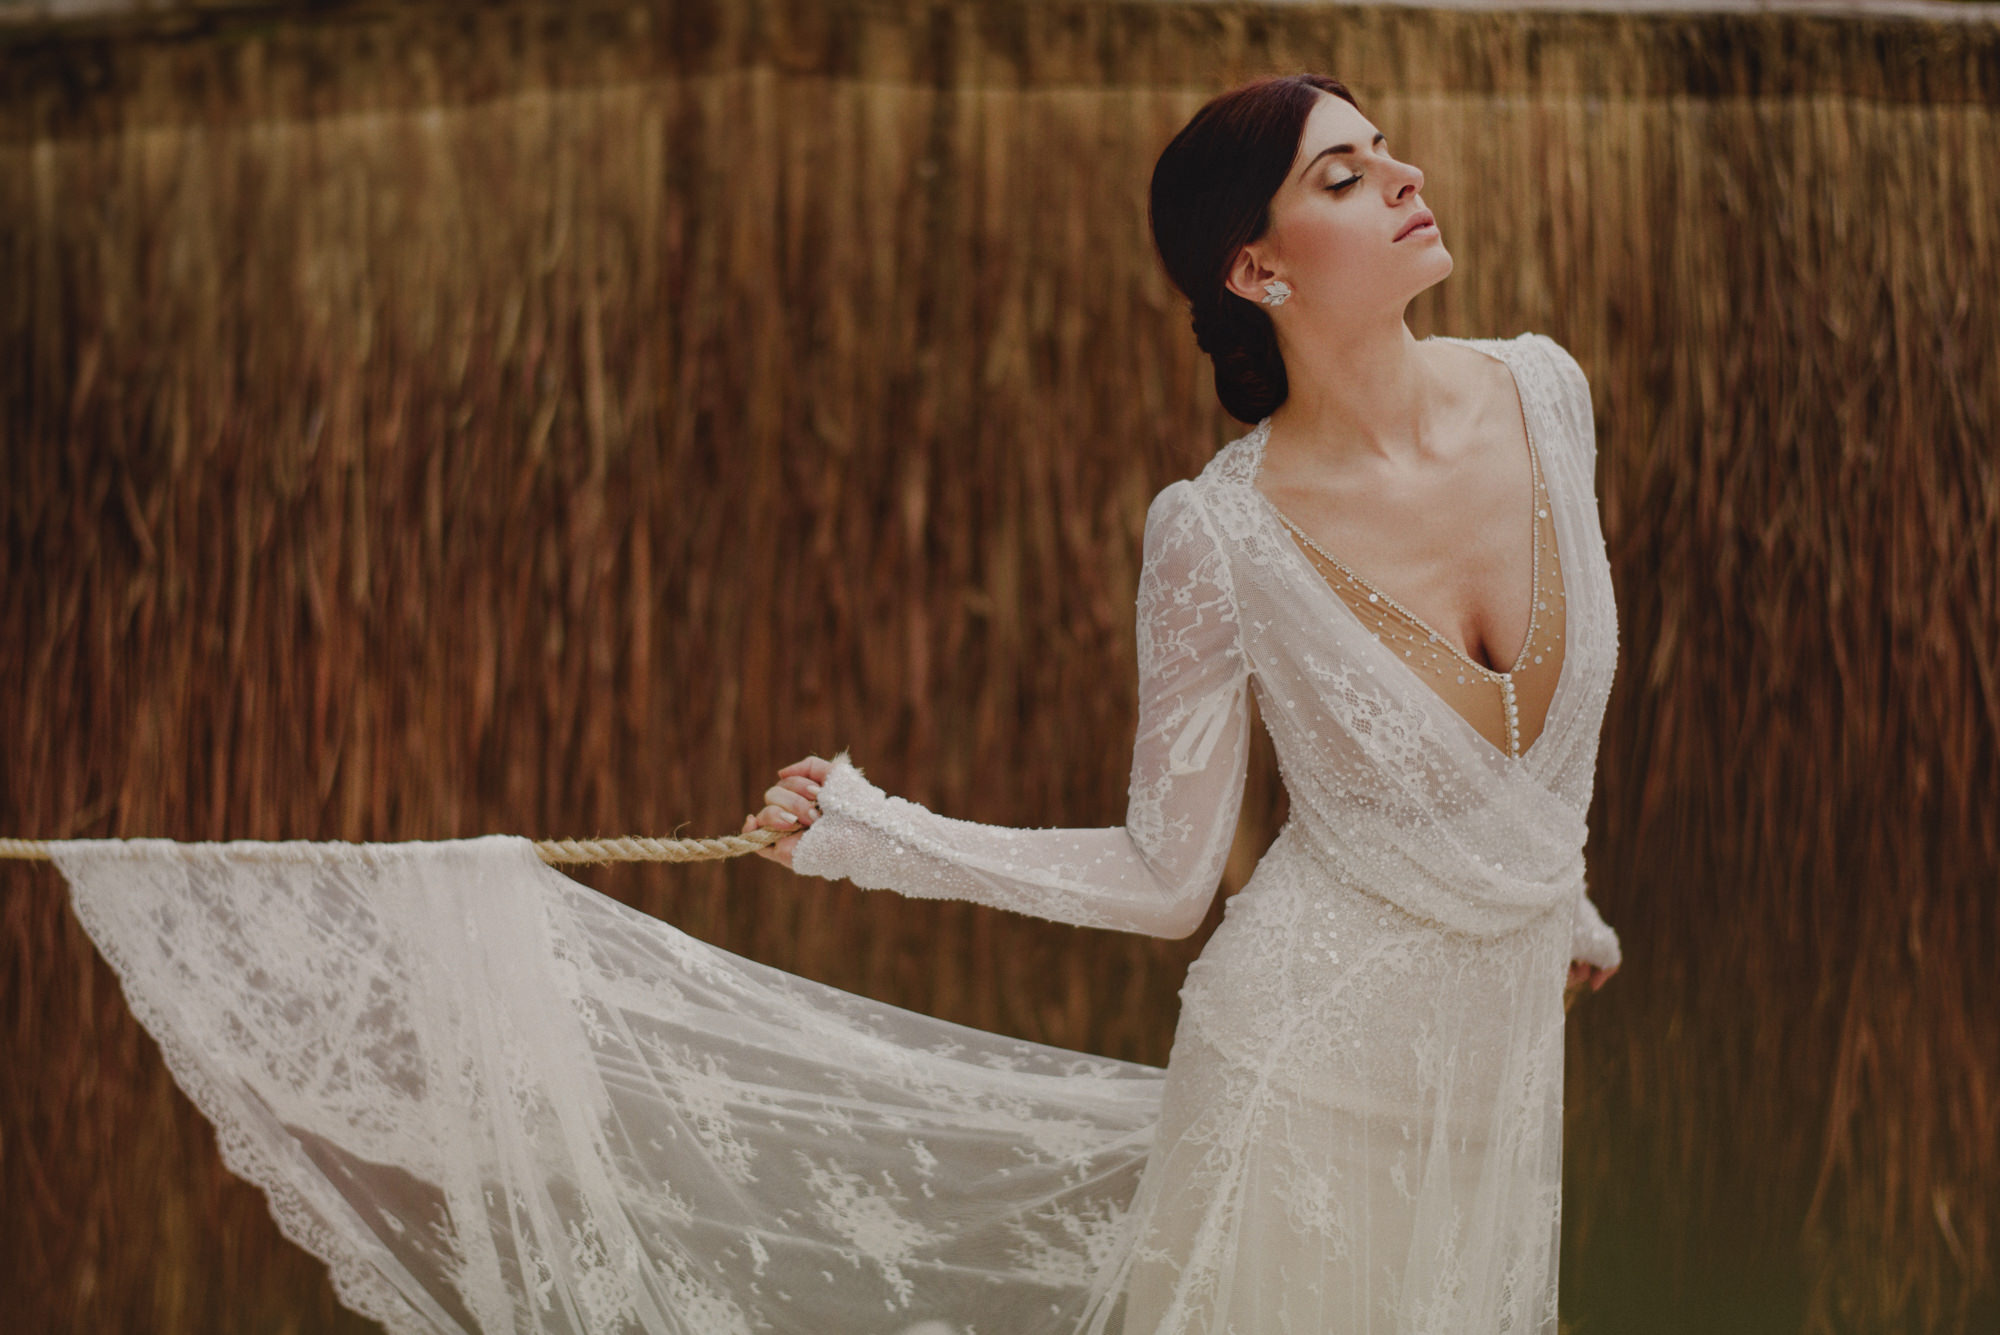 Bride wearing sheer lace gown with gold bodice - photo by Fer Juaristi